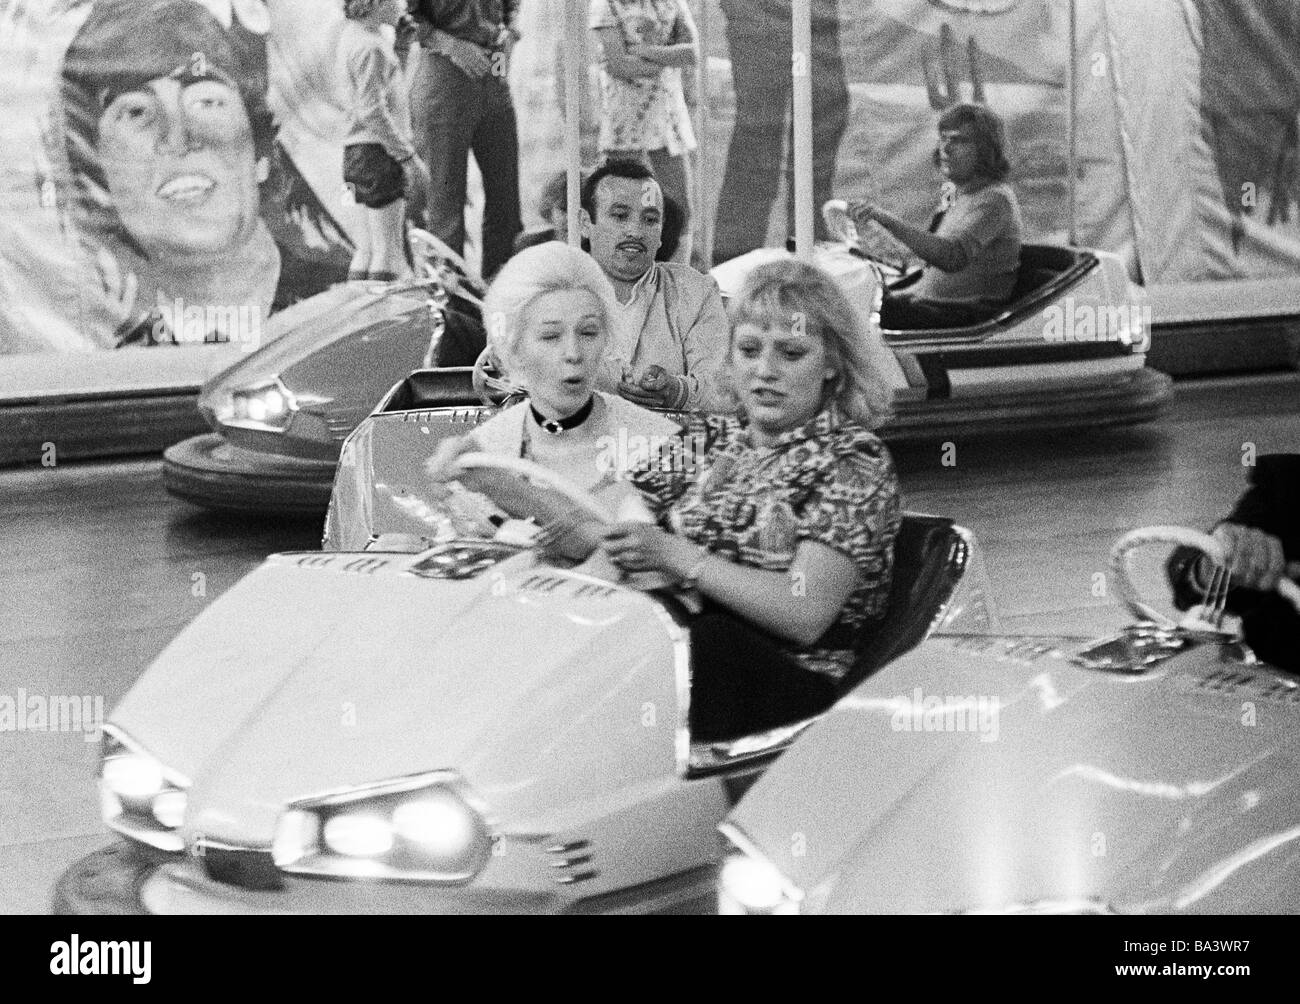 Seventies, black and white photo, people, two women in a dodgem car, kermess, aged 30 to 40 years, 50 to 60 years, - Stock Image